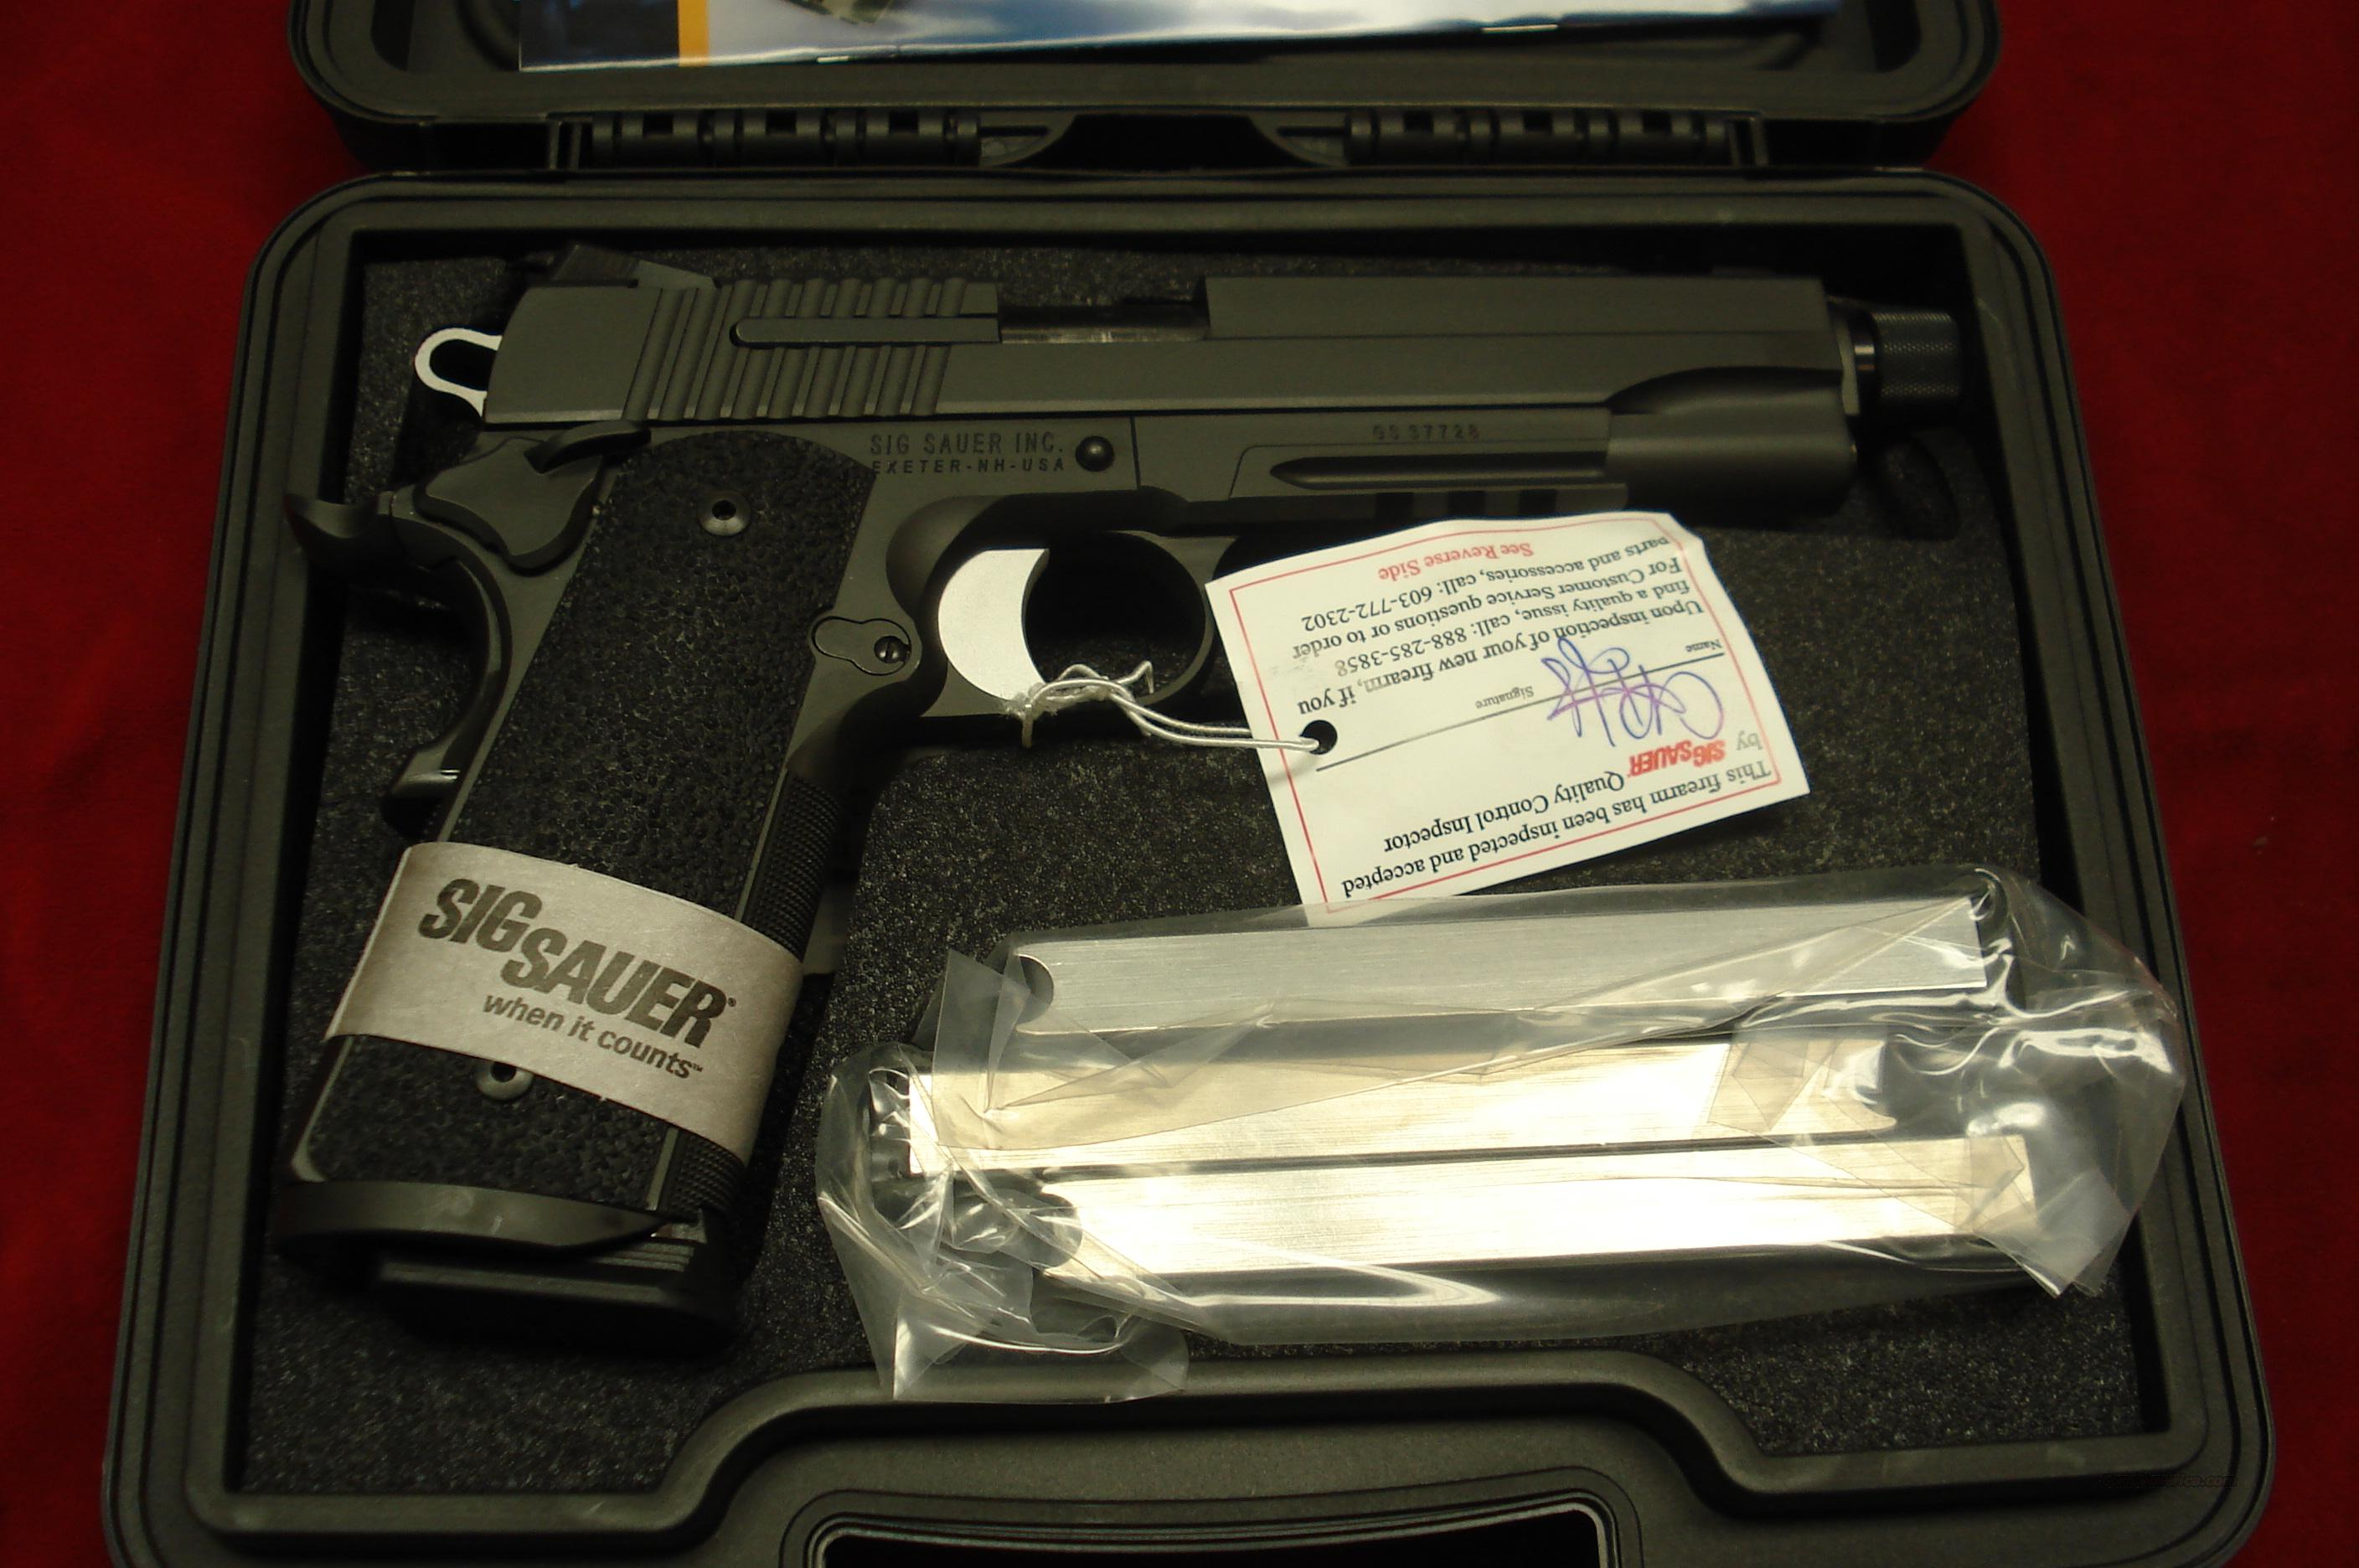 SIG SAUER 1911 TAC OPS 45ACP WITH THREADED BARREL AND 3 MAGAZINES  NEW  Guns > Pistols > Sig - Sauer/Sigarms Pistols > 1911